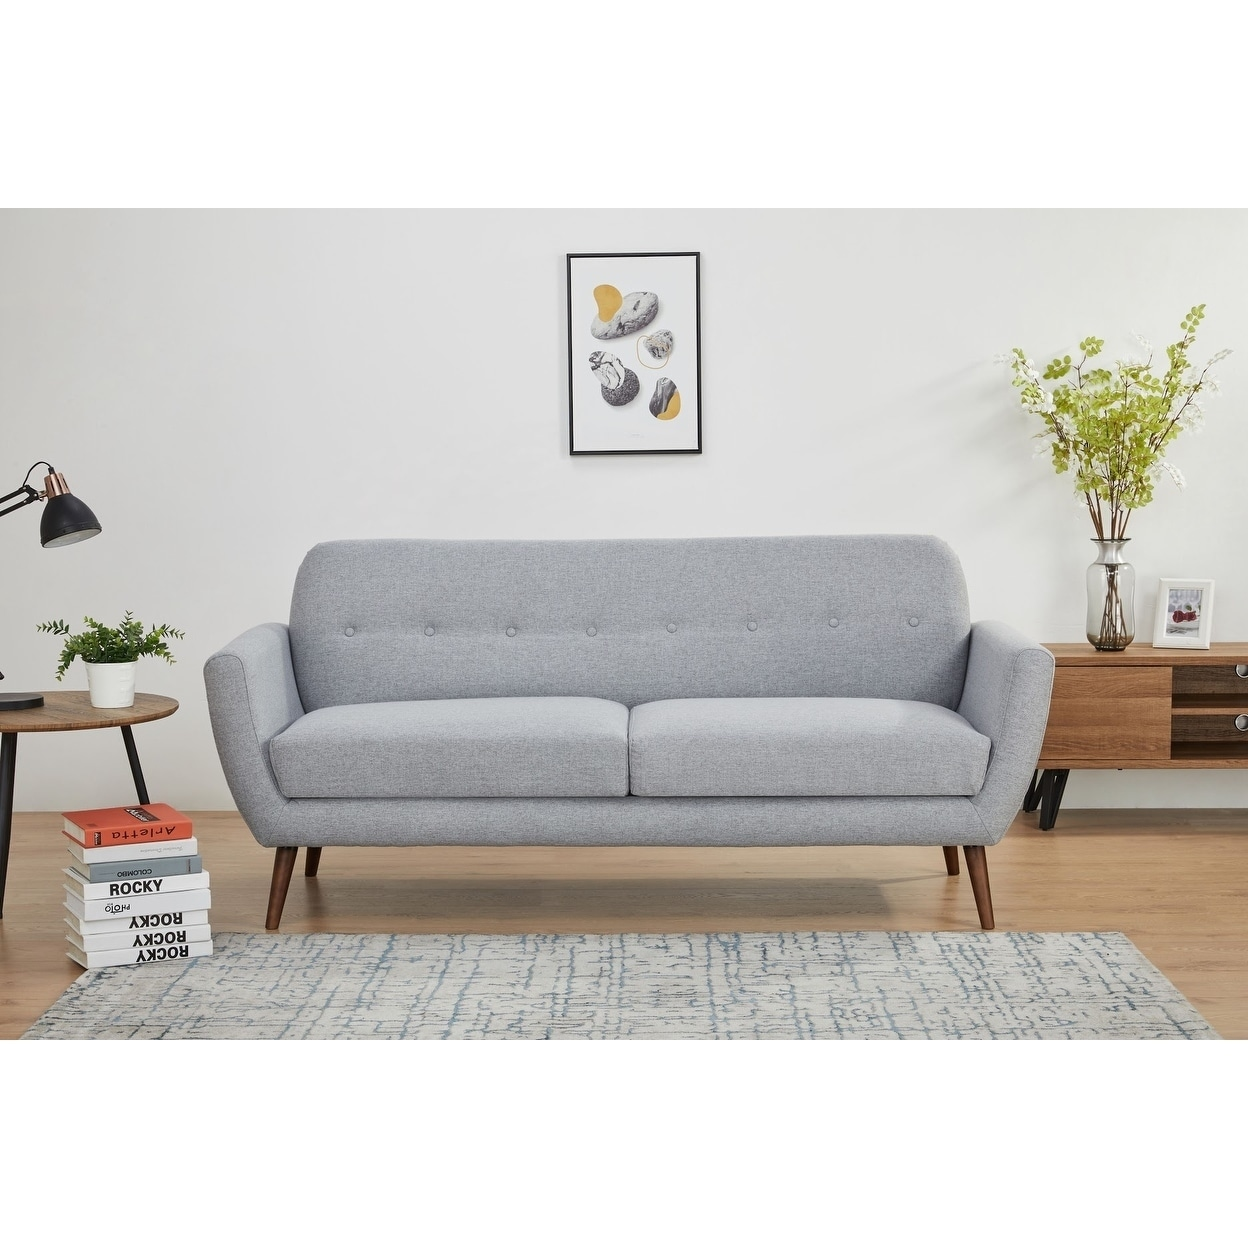 Artdeco Home Vegas 3 seater sofa